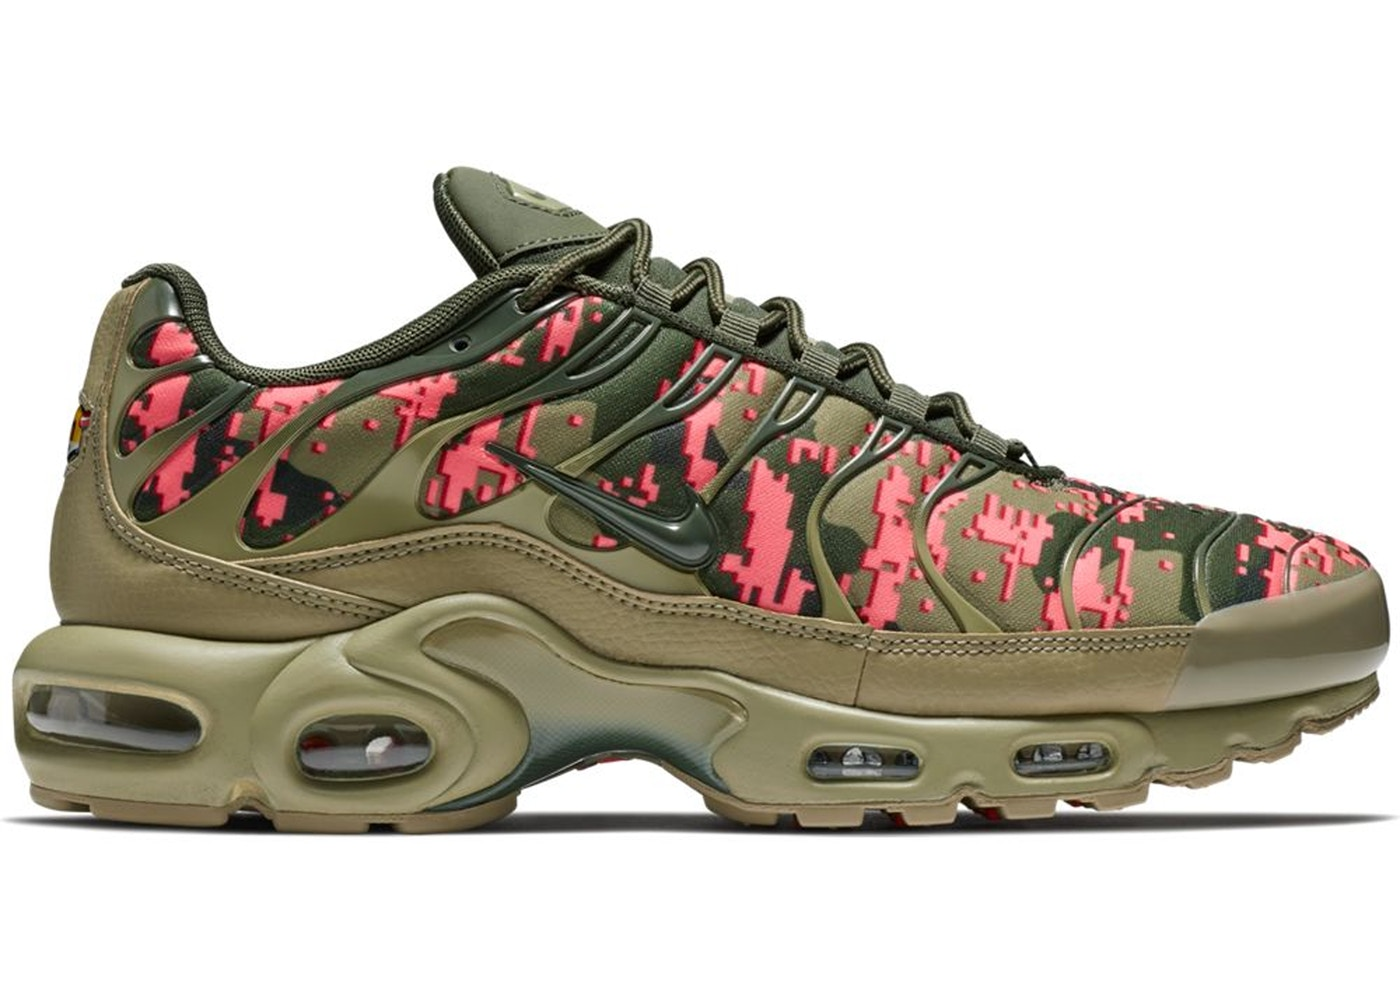 44643324a5 Buy Nike Air Max Plus Shoes & Deadstock Sneakers